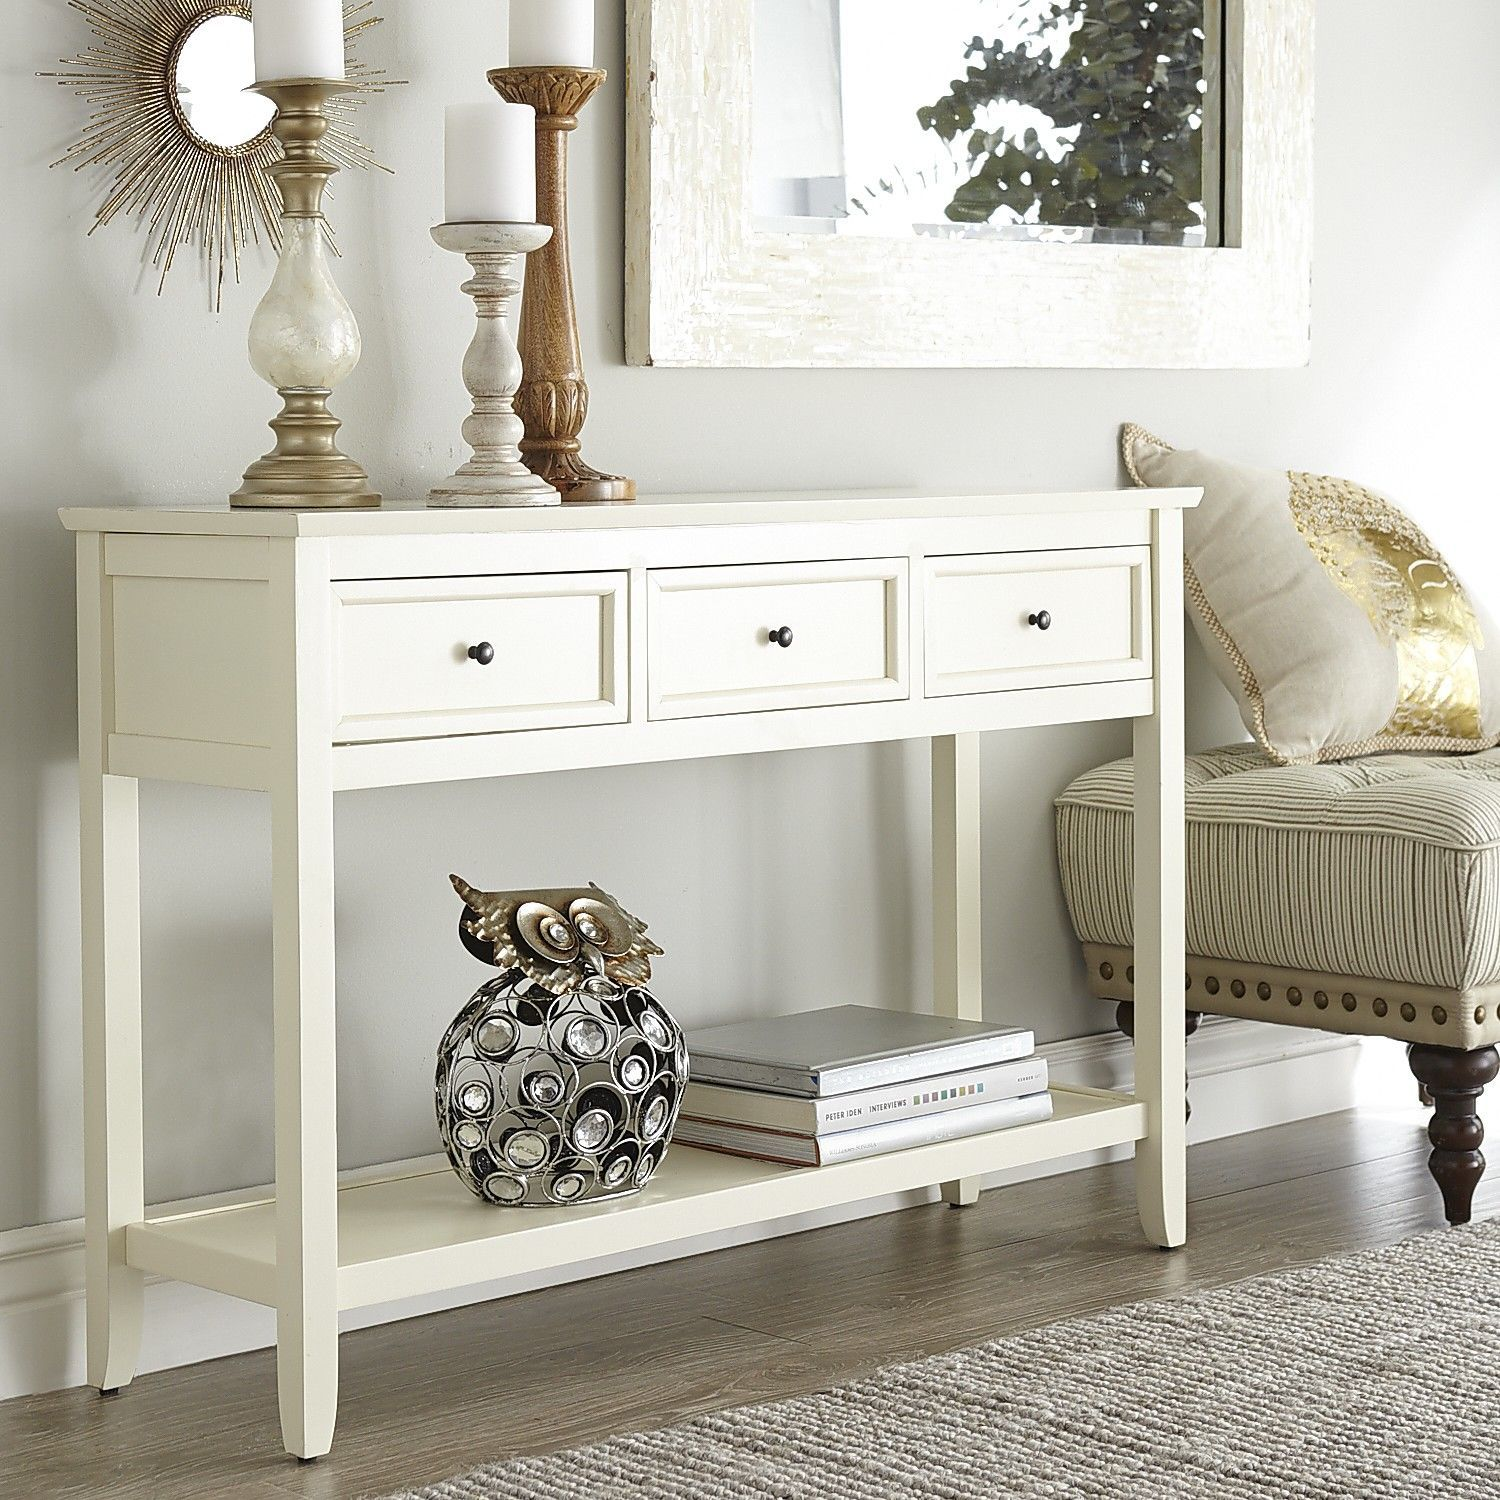 antique white console table Ashington Console Table   Antique White | Pier 1 Imports  antique white console table